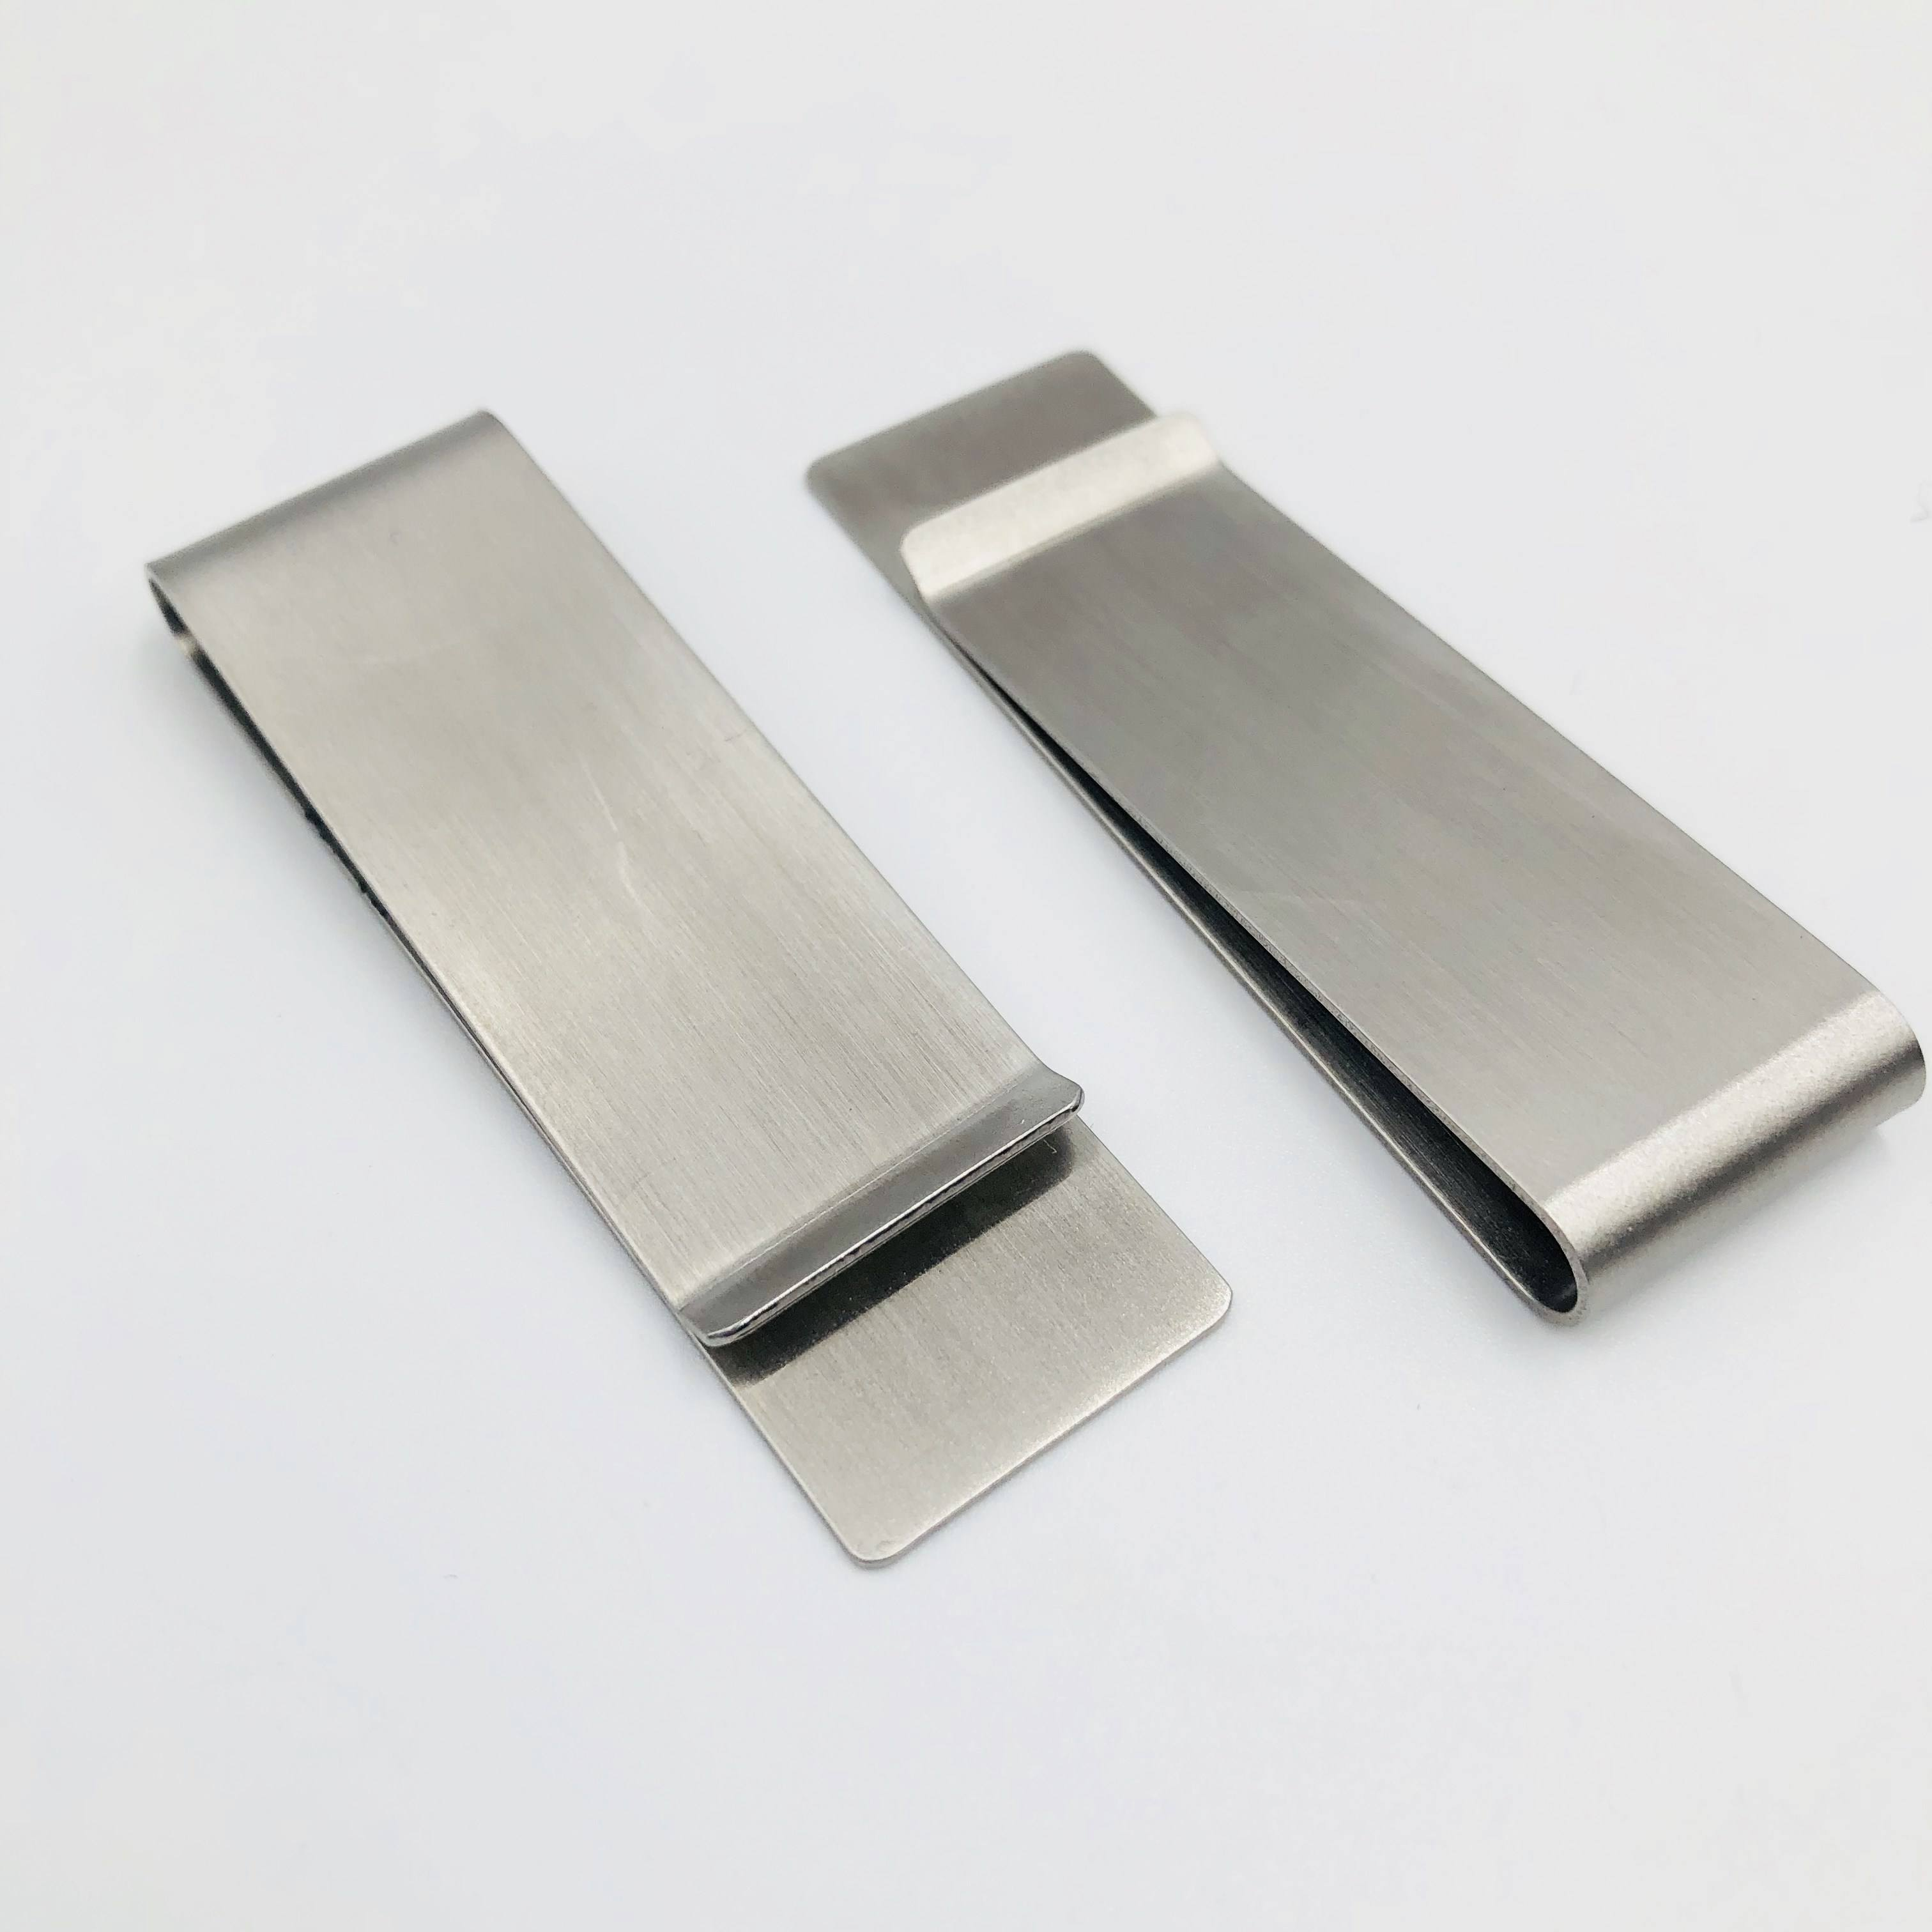 2019 Good Quality Stainless Steel Wallet Money clip For Men